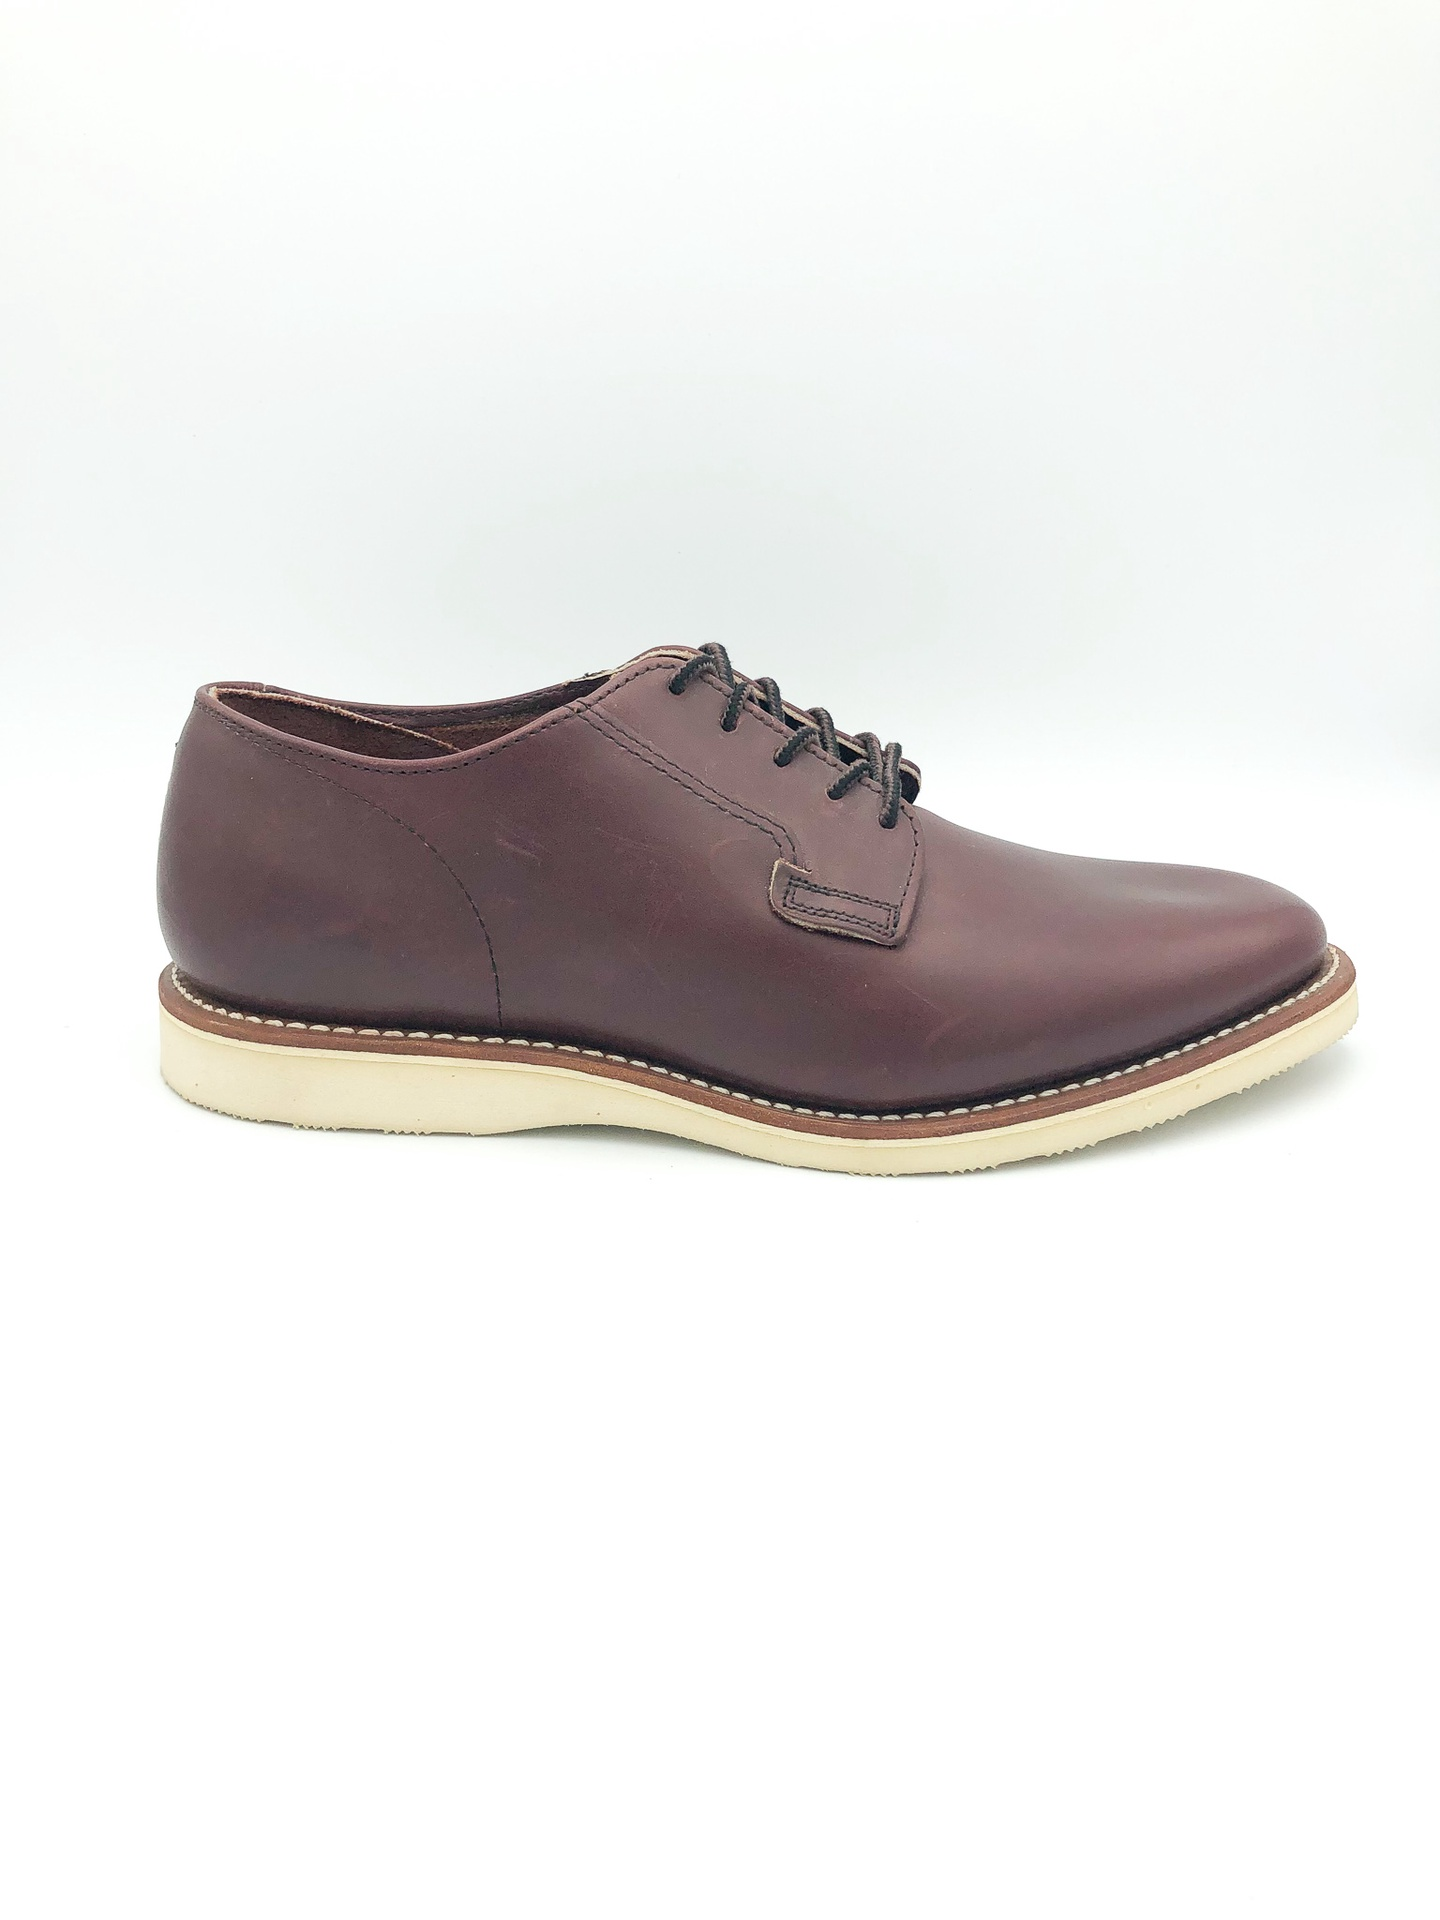 RED WING - MEN'S POSTMAN OXFORD IN OXBLOOD MESA LEATHER